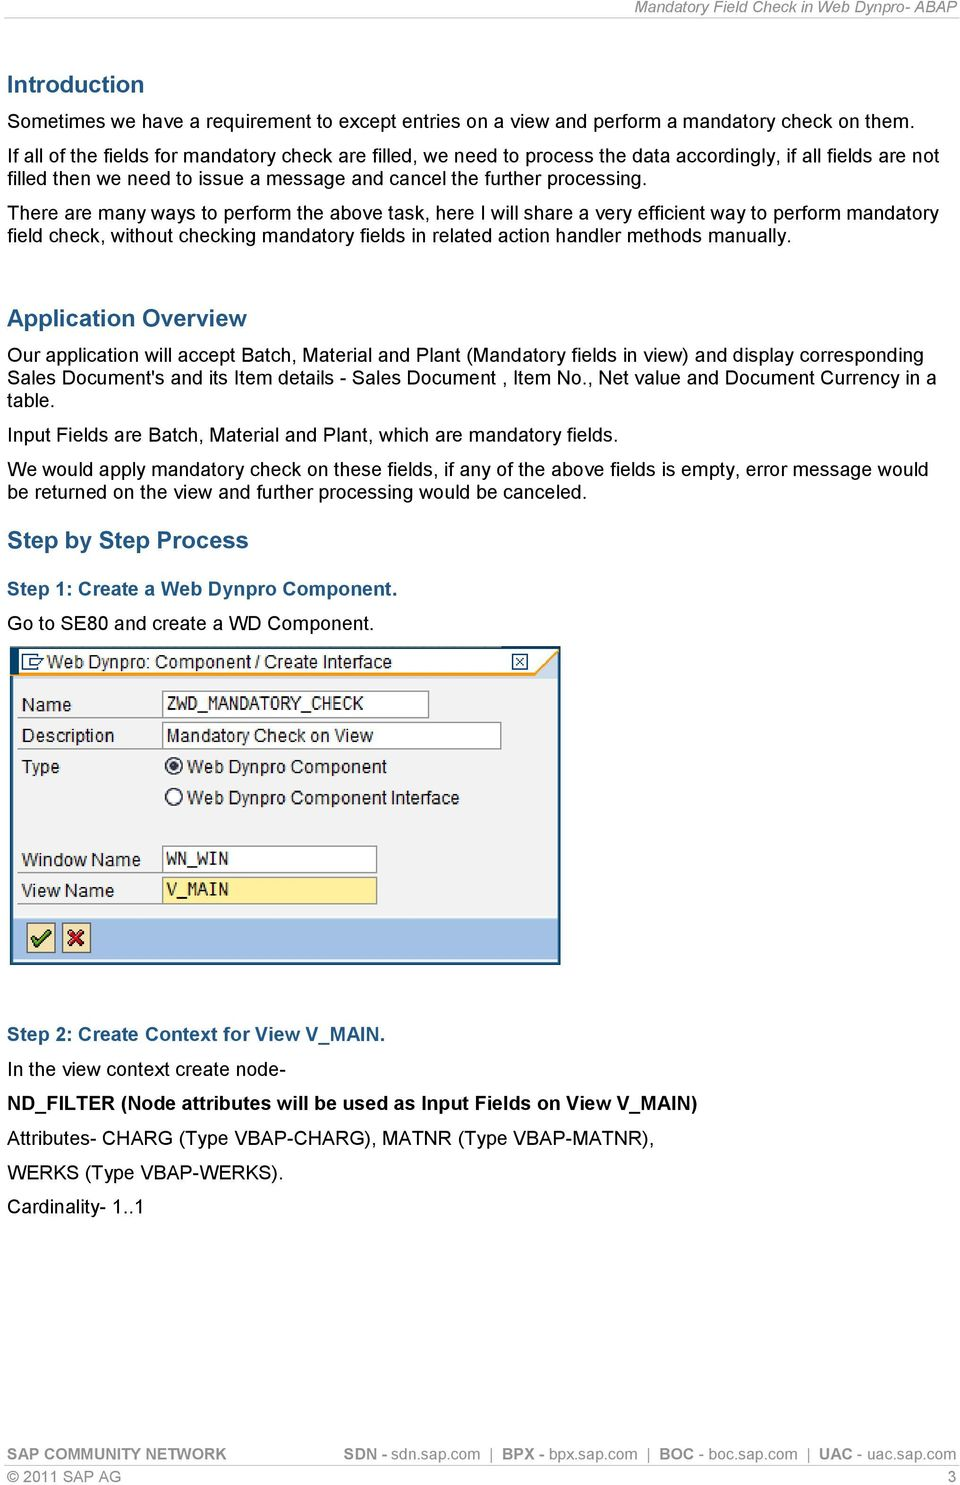 Mandatory Field Check in Web Dynpro- ABAP - PDF